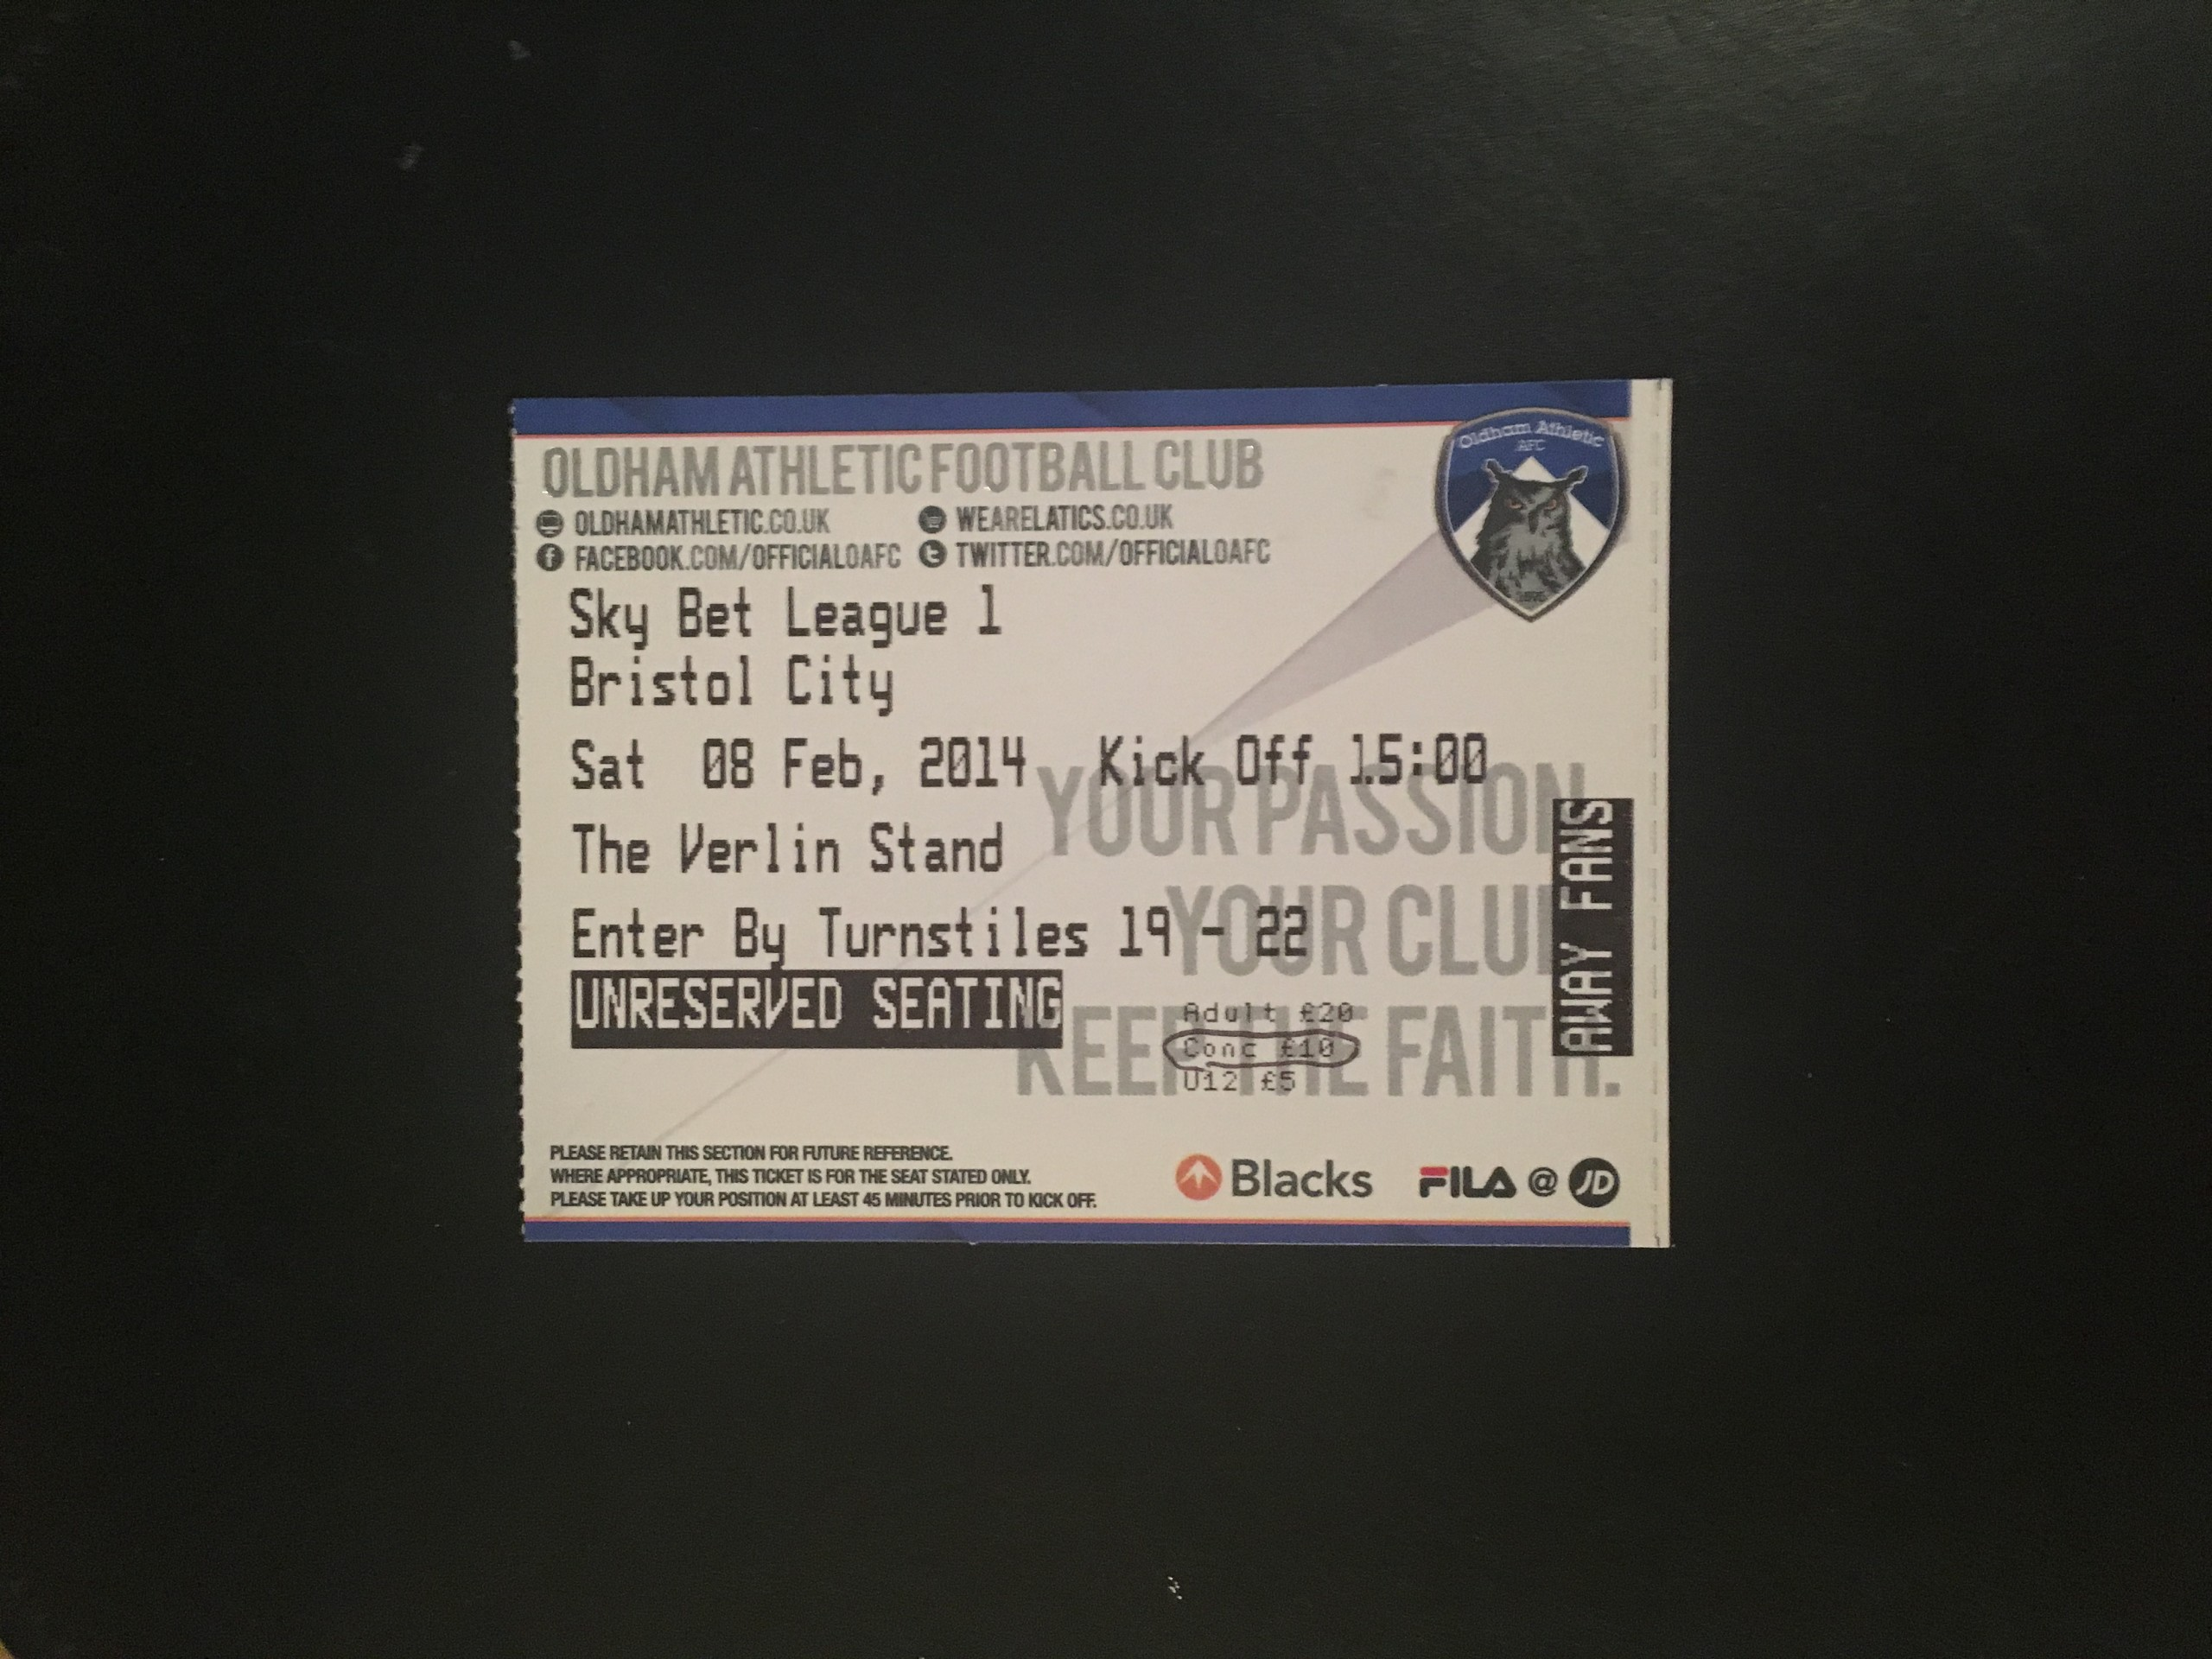 Oldham Athletic v Bristol City 08-02-2014 Ticket